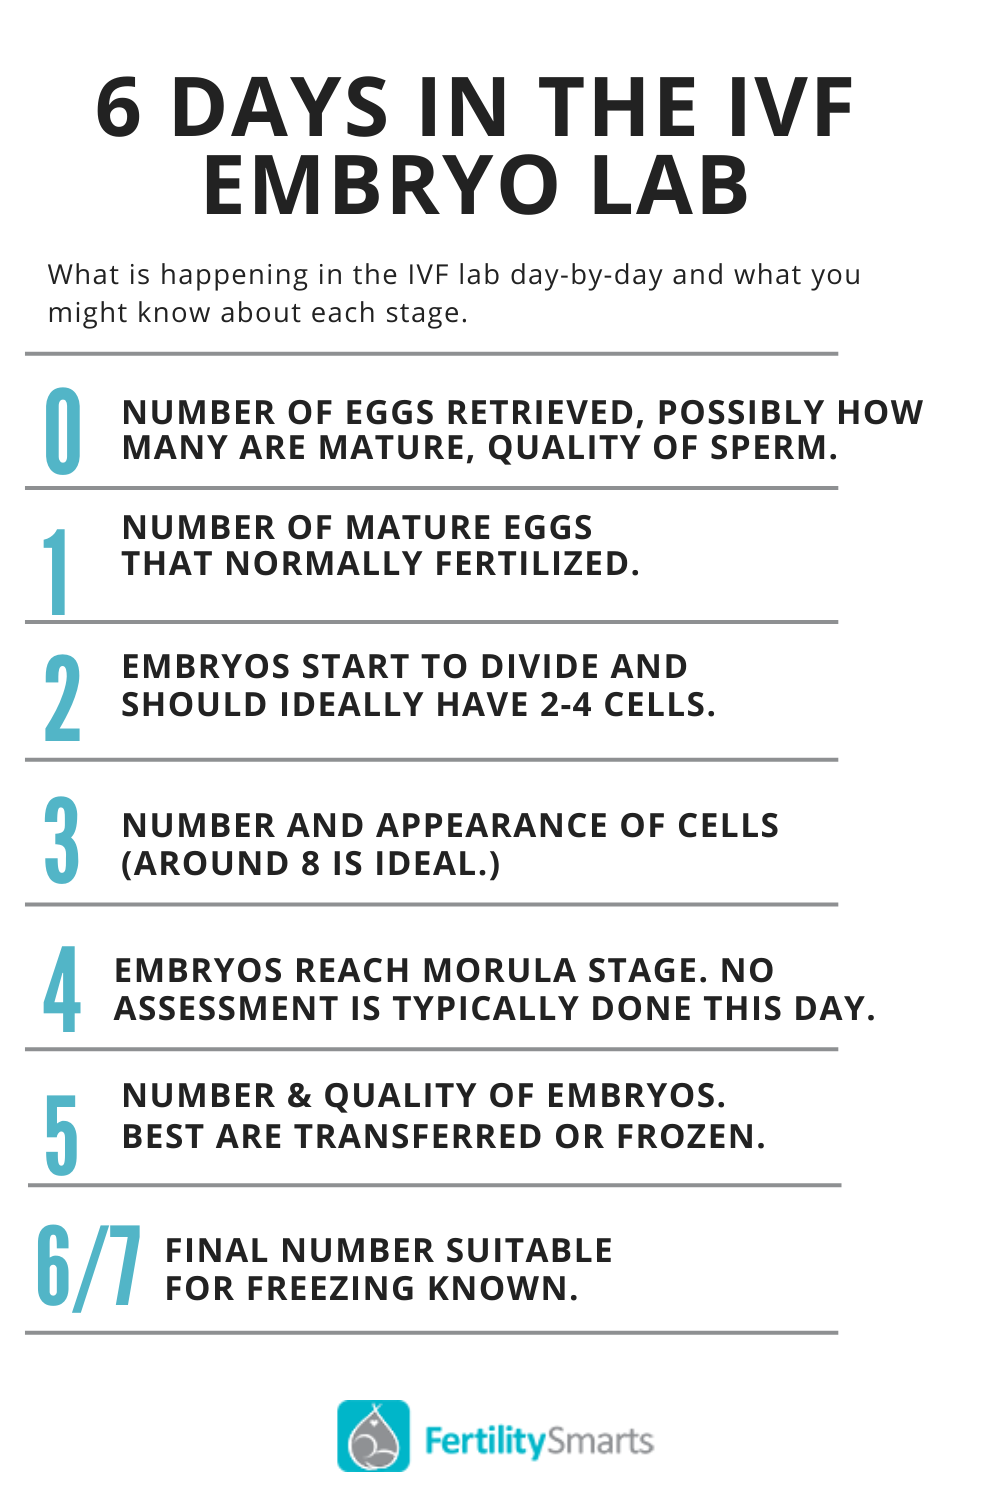 Timeline of how embryos develop in the IVF lab.